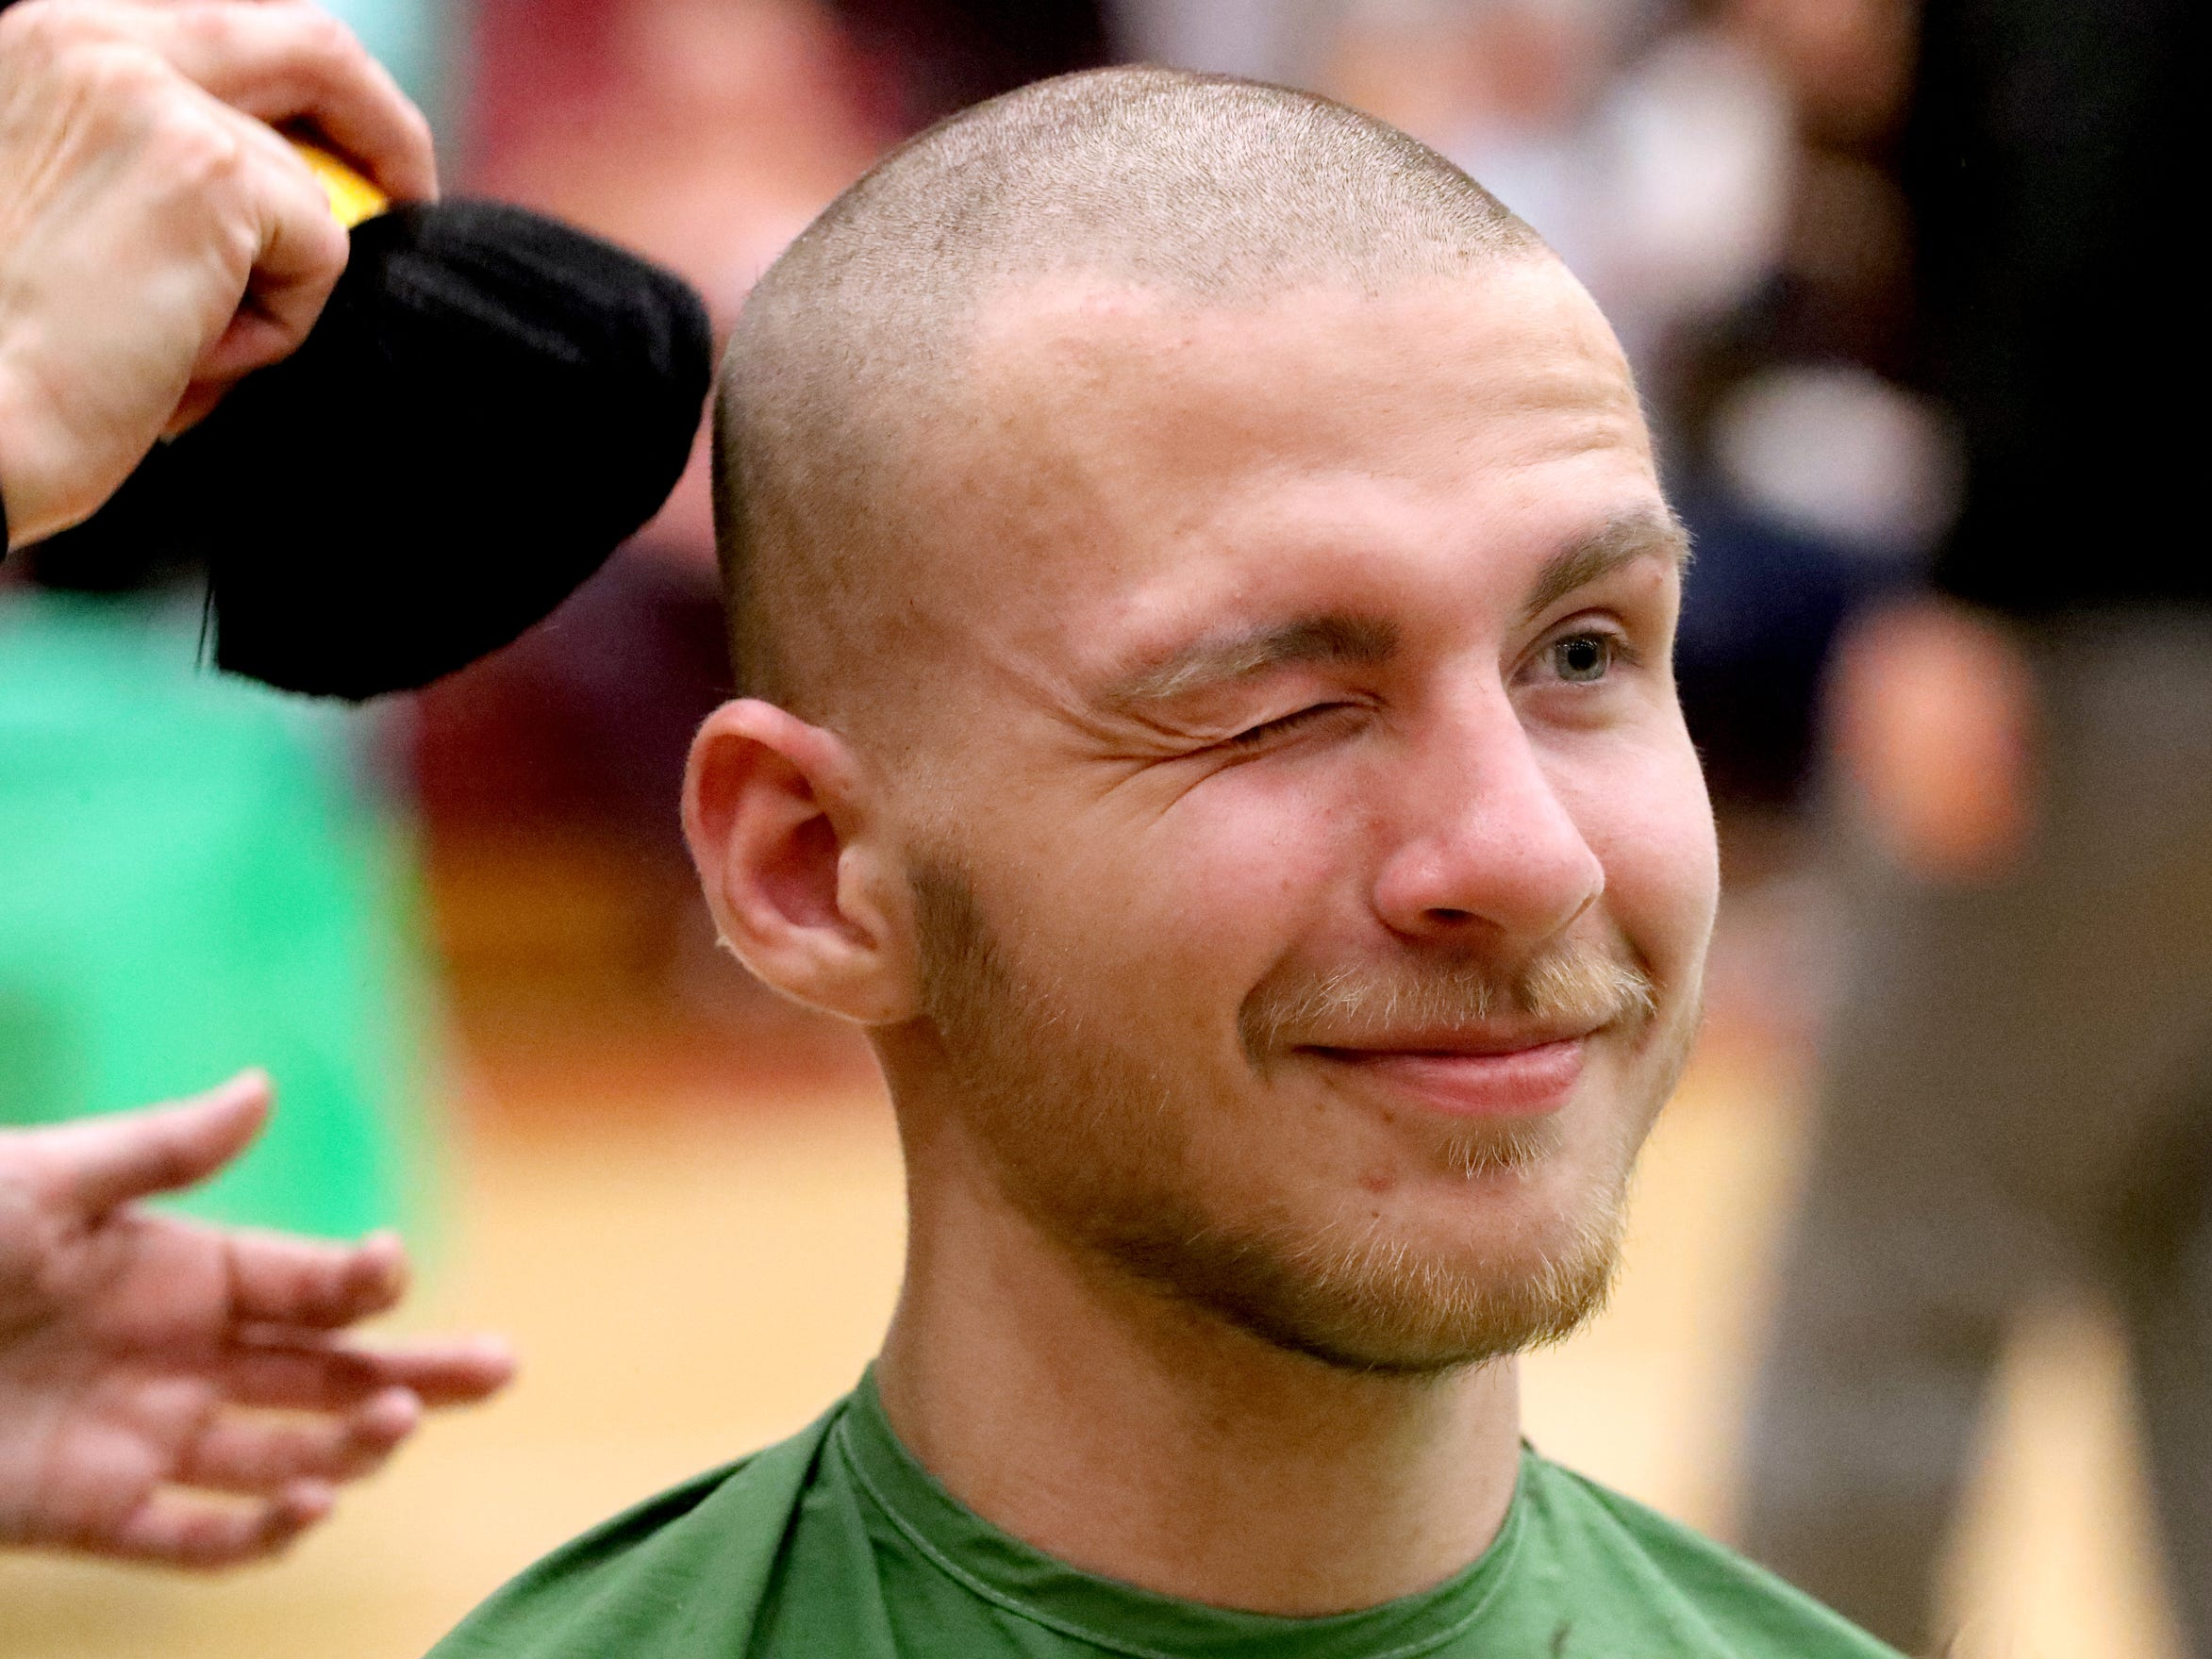 Riverdale student Caleb Shew reacts as his head is brushed off after he got his head shaved during Riverdale High School's sixth annual Brave the Shave fundraiser to benefit St. Baldrick's Foundation on Thursday, March 21, 2019. The organization raises funds and awareness for childhood cancer.